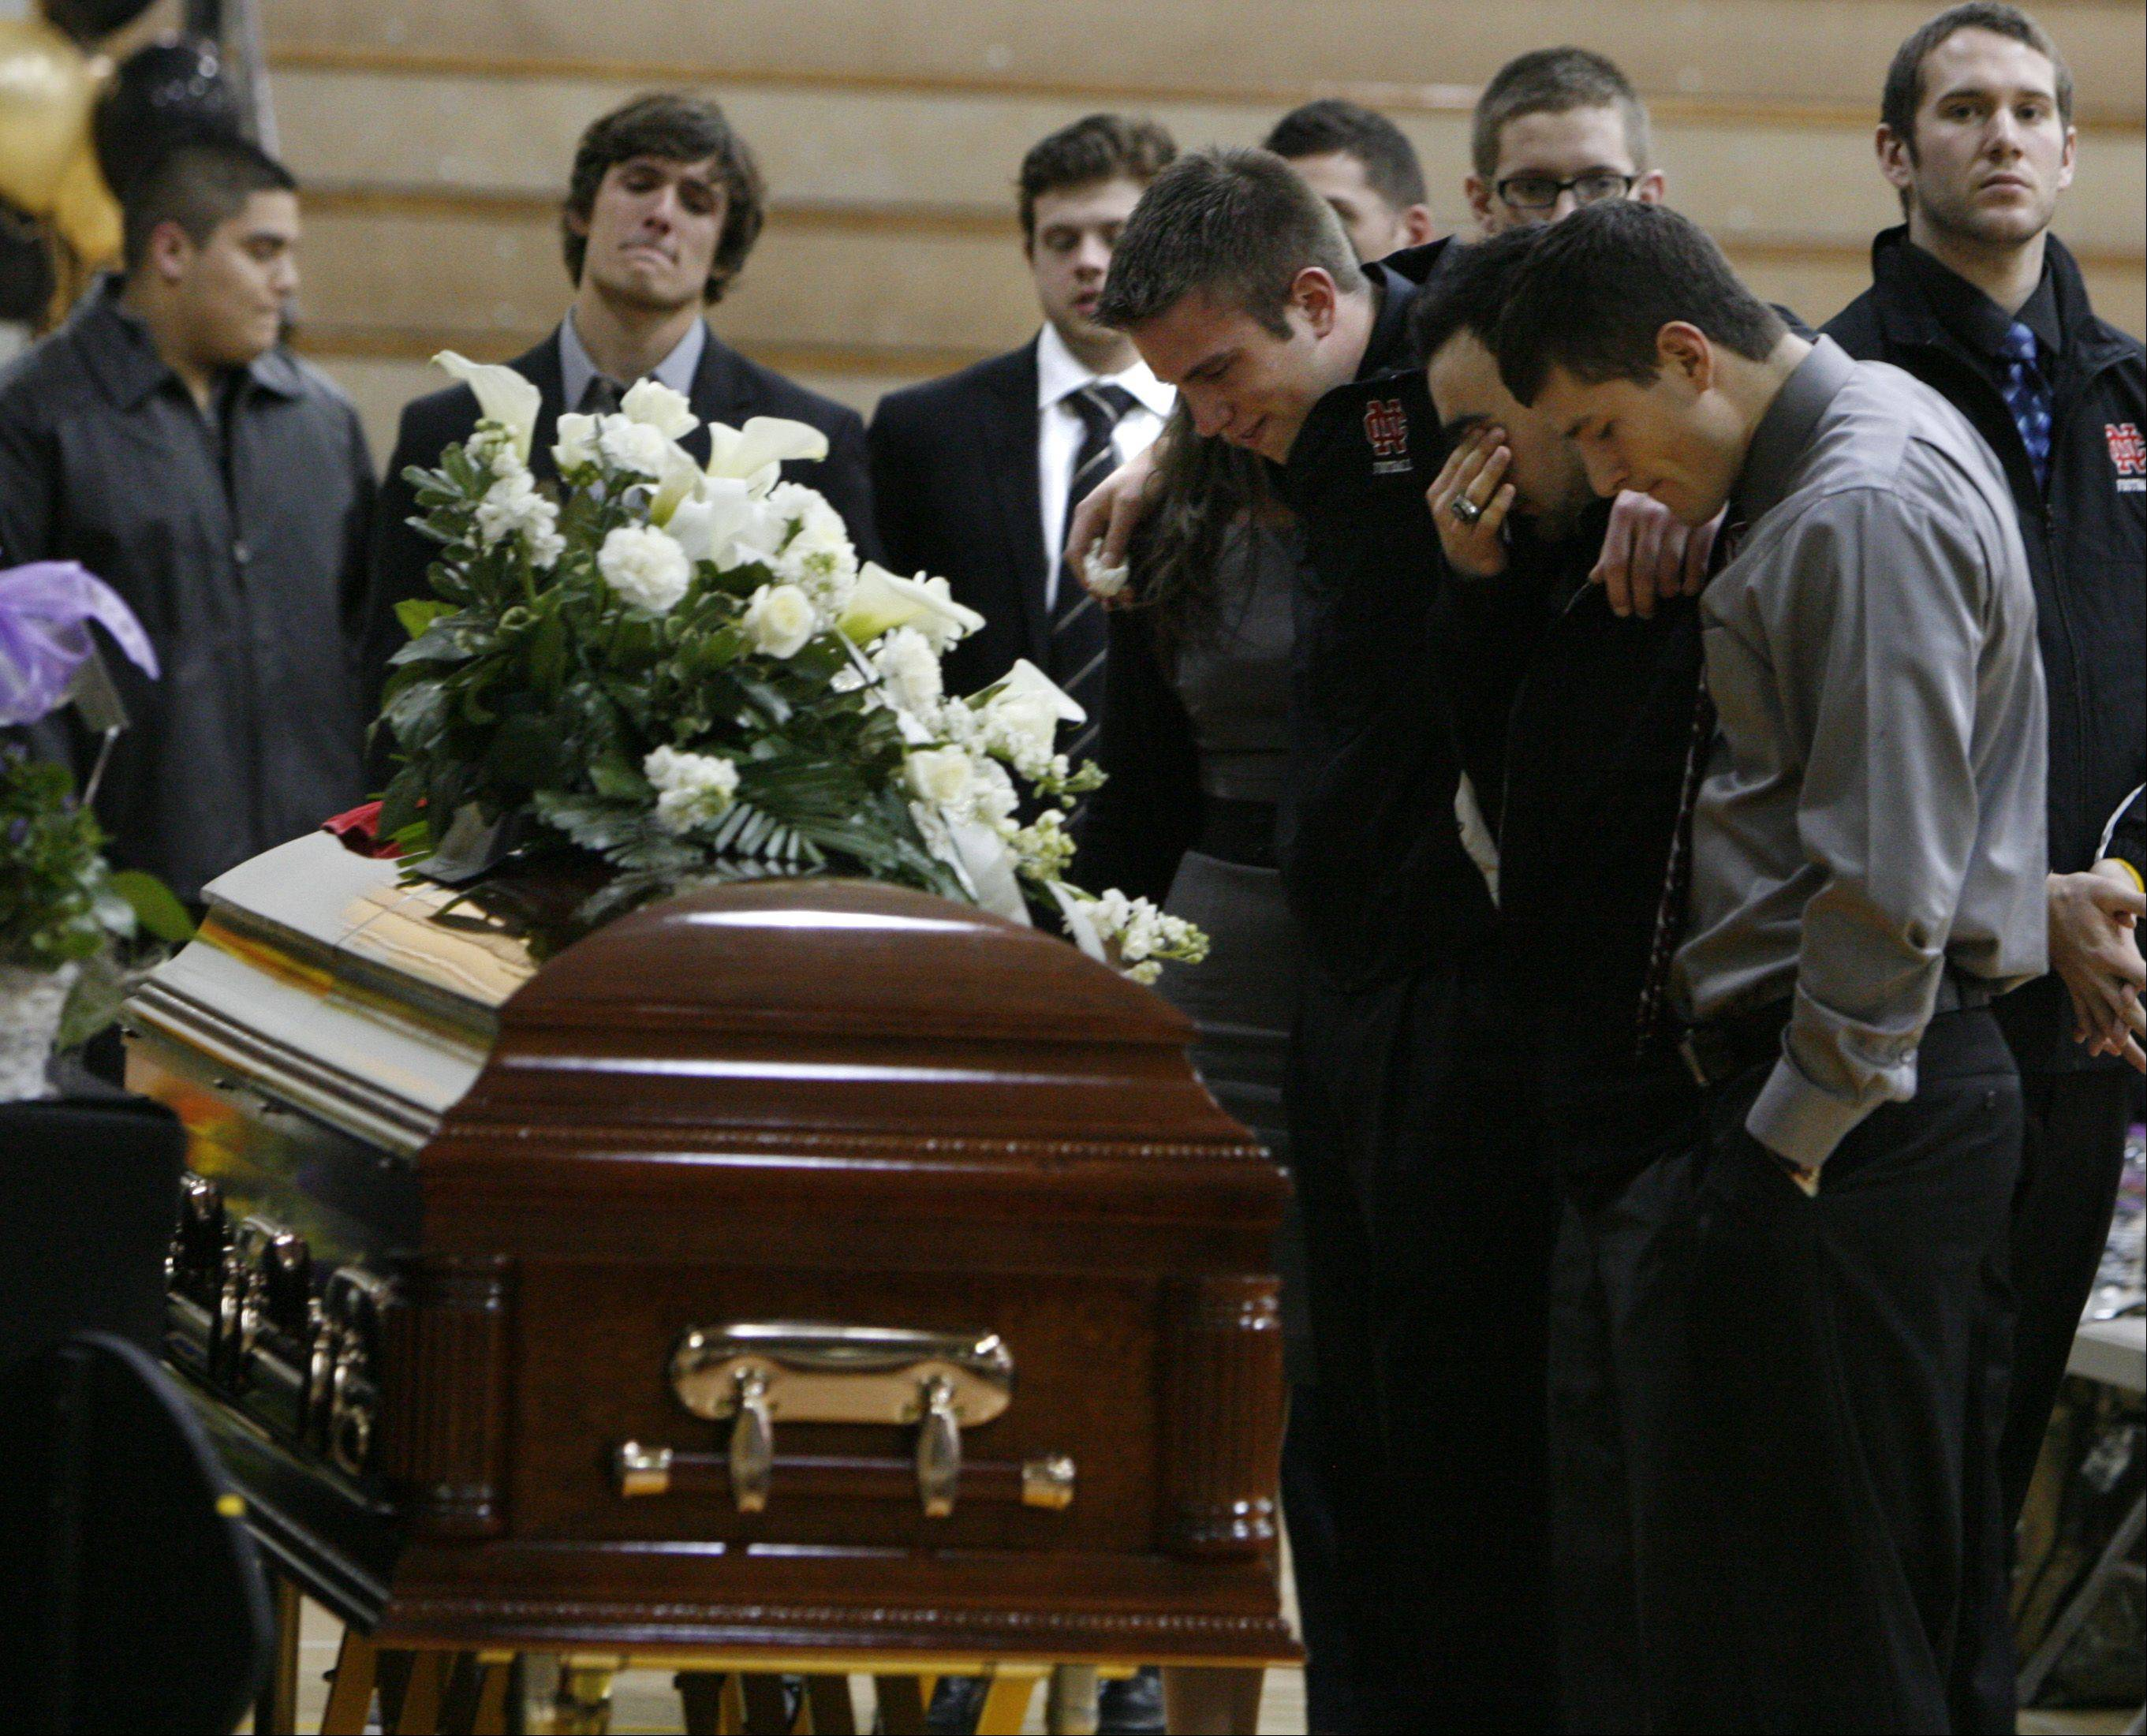 "Sports players from several Naperville area schools could not hold back tears during the ""Celebrating a Remarkable Life"" visitation and memorial service for slain Naperville teacher Shaun Wild at Brown Deer High School in Brown Deer, Wis., Thursday."